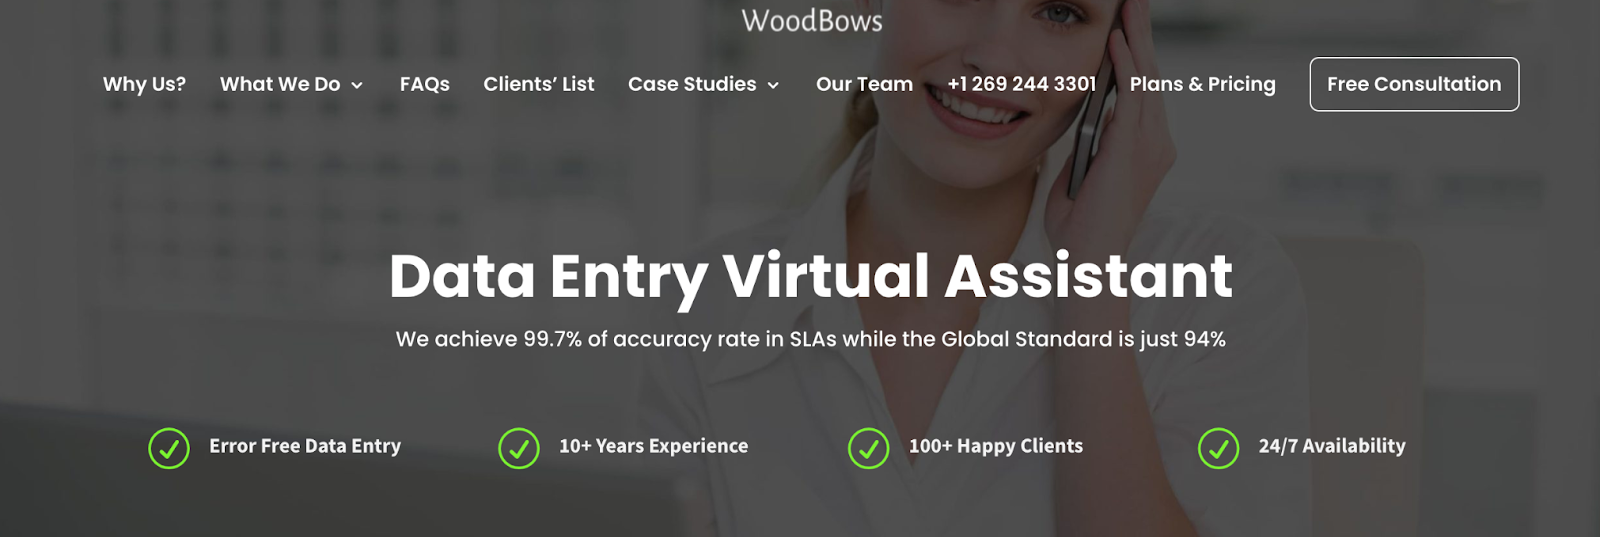 WoodBows website – data entry outsourcing company in India